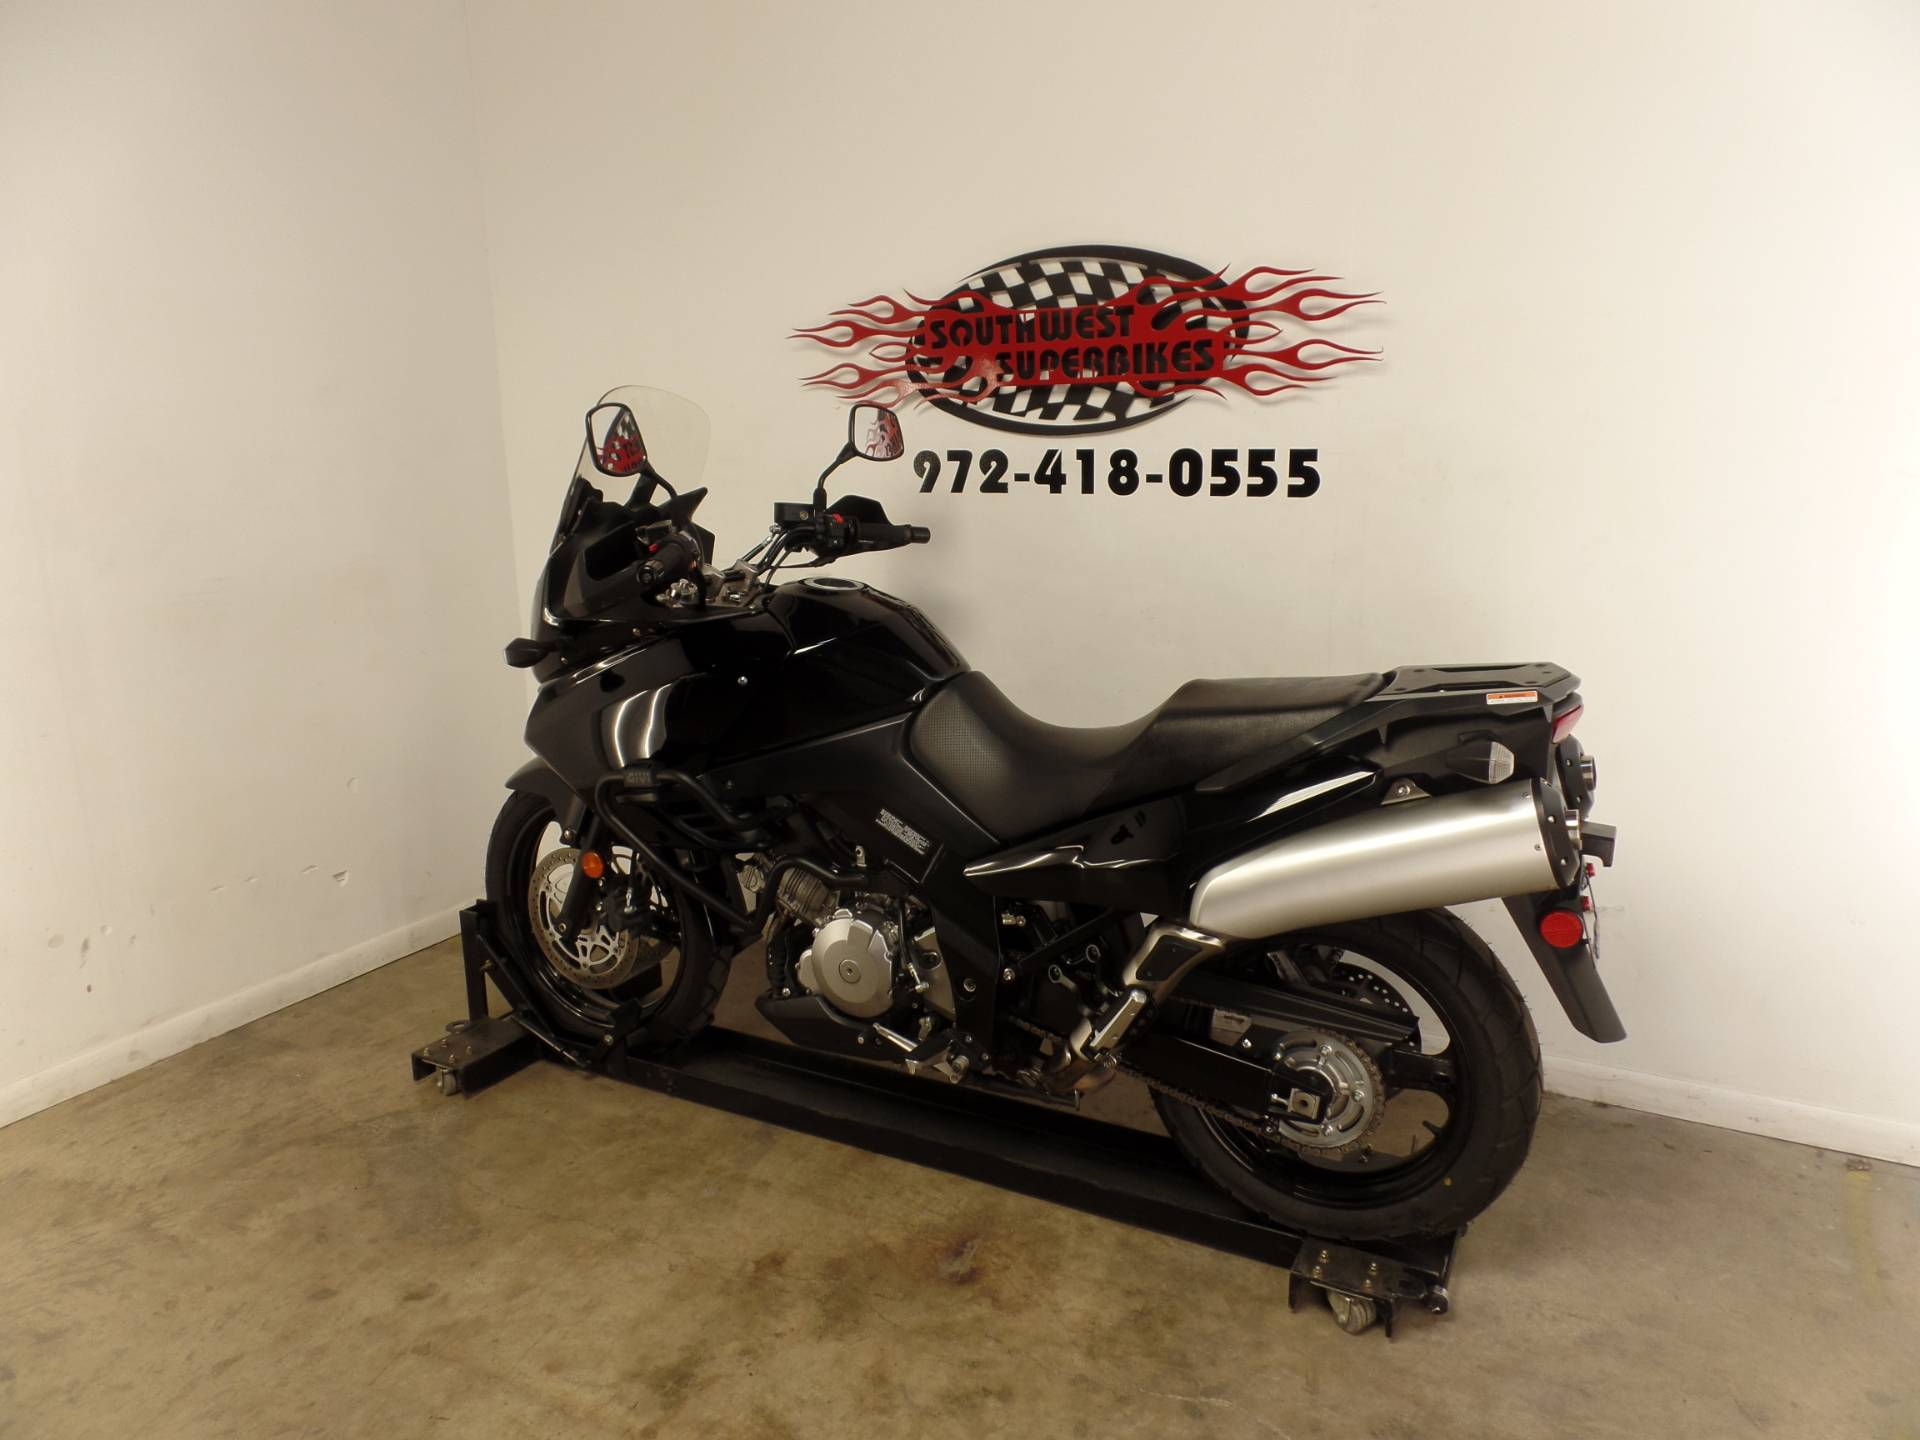 2009 Suzuki V-Strom 1000 in Dallas, Texas